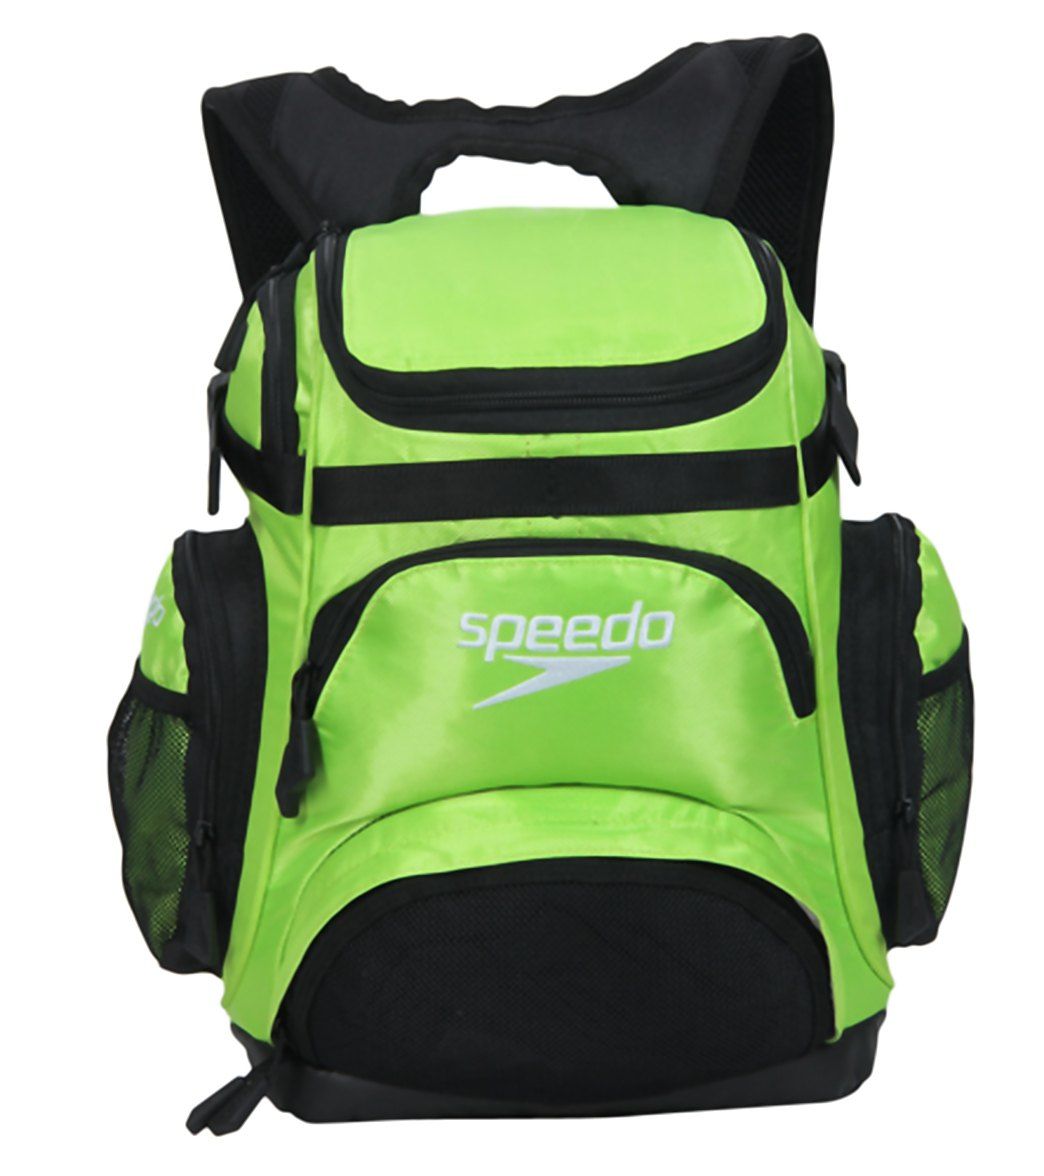 Speedo Small Pro Backpack at SwimOutlet.com 6422144818890